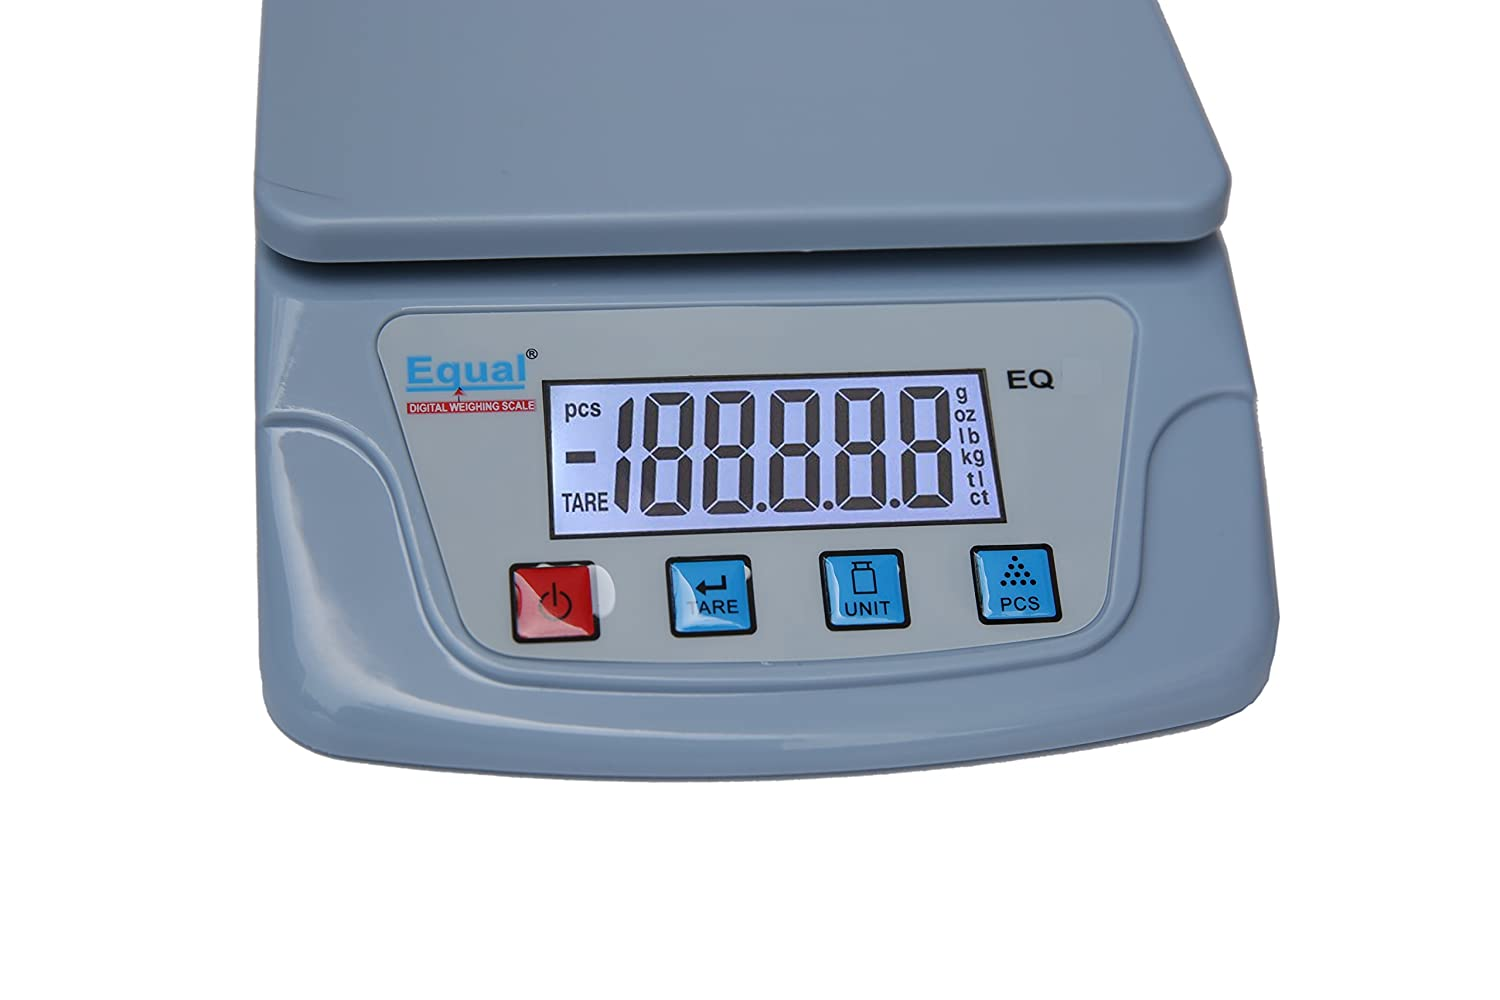 Buy Digital Kitchen Weighing Scale 6 Kg Capacity and 200 mg Accuracy ...